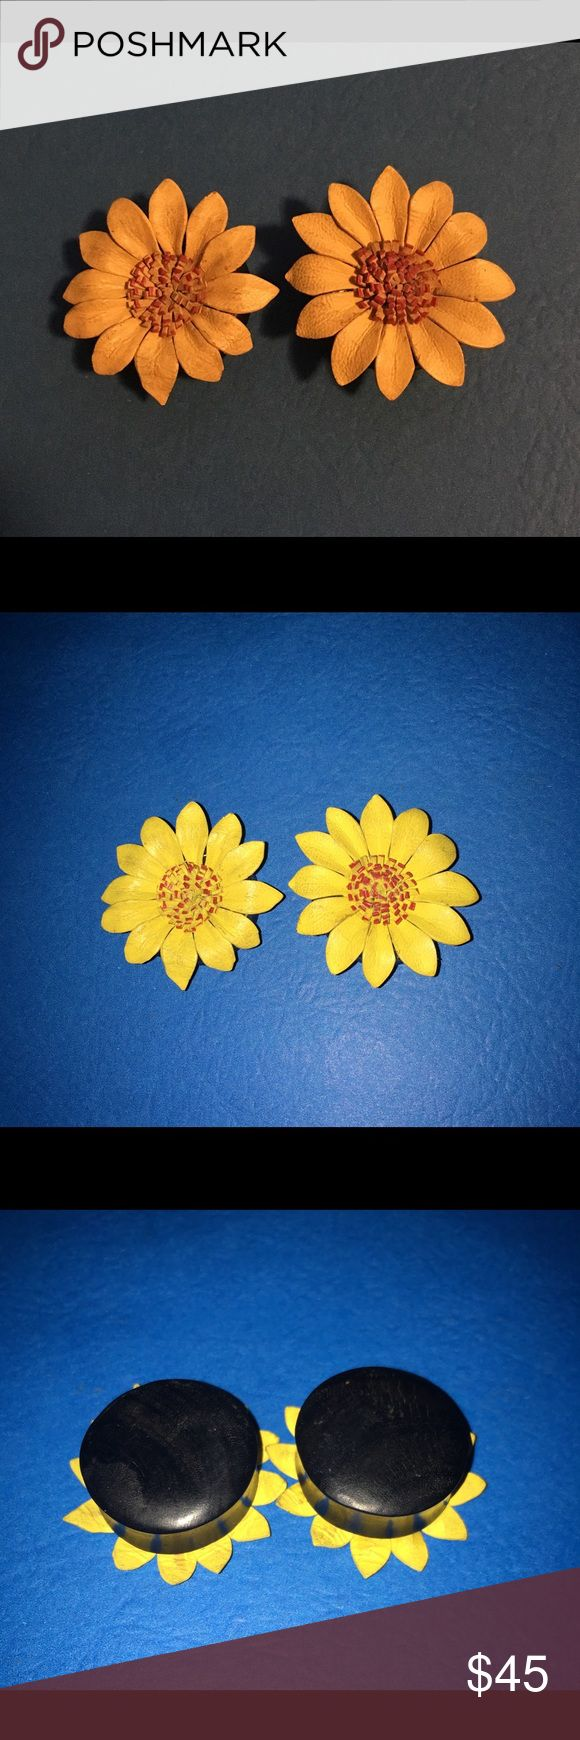 BRAND NEW 1 inch(25mm) sunflower Ear plugs/gauges Brand new 1 inch (25mm) Leather sunflower ear plugs/gauges. Order it from online but they gave me the wrong size, was supposed to be 1 1/4th inch but fits more like an 1 inch. Was it ok much of a hassle to send back for a refund. 100% brand new plug your holes Jewelry Earrings